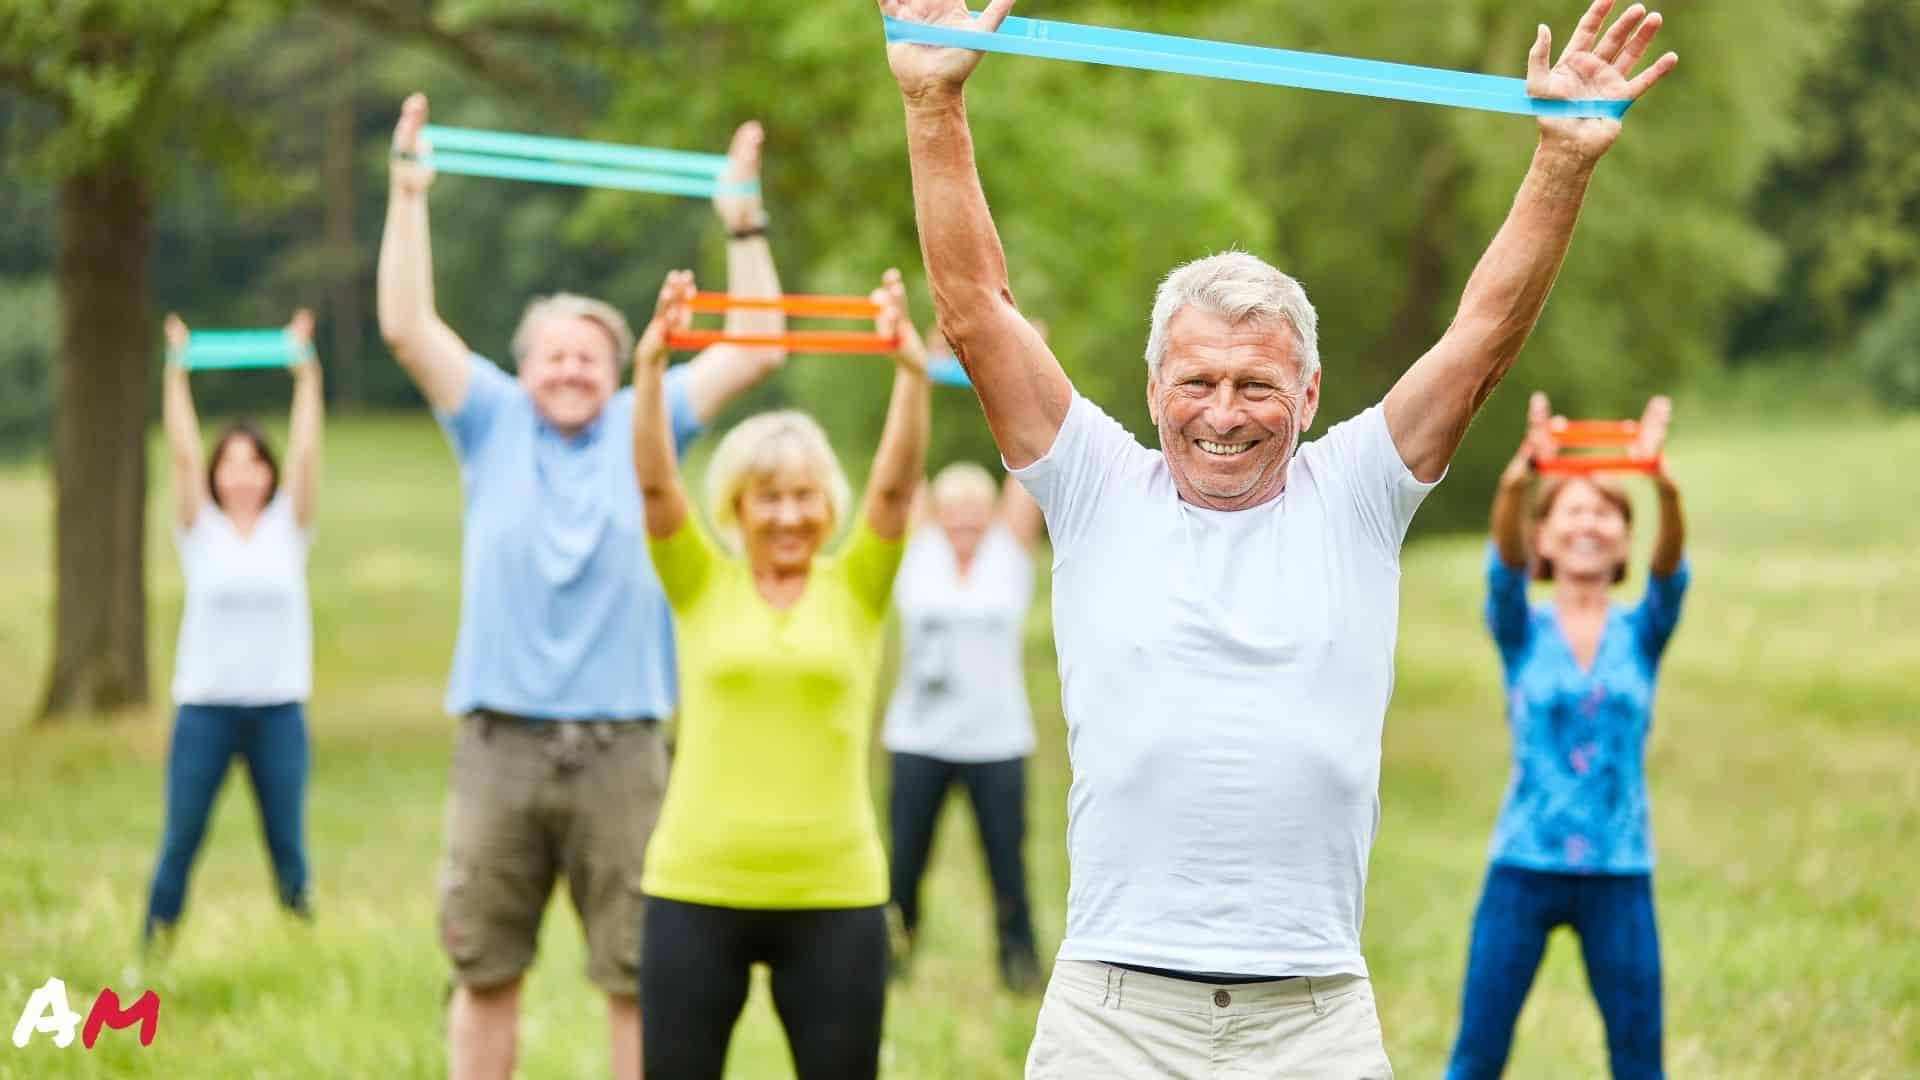 resistance band exercises for seniors